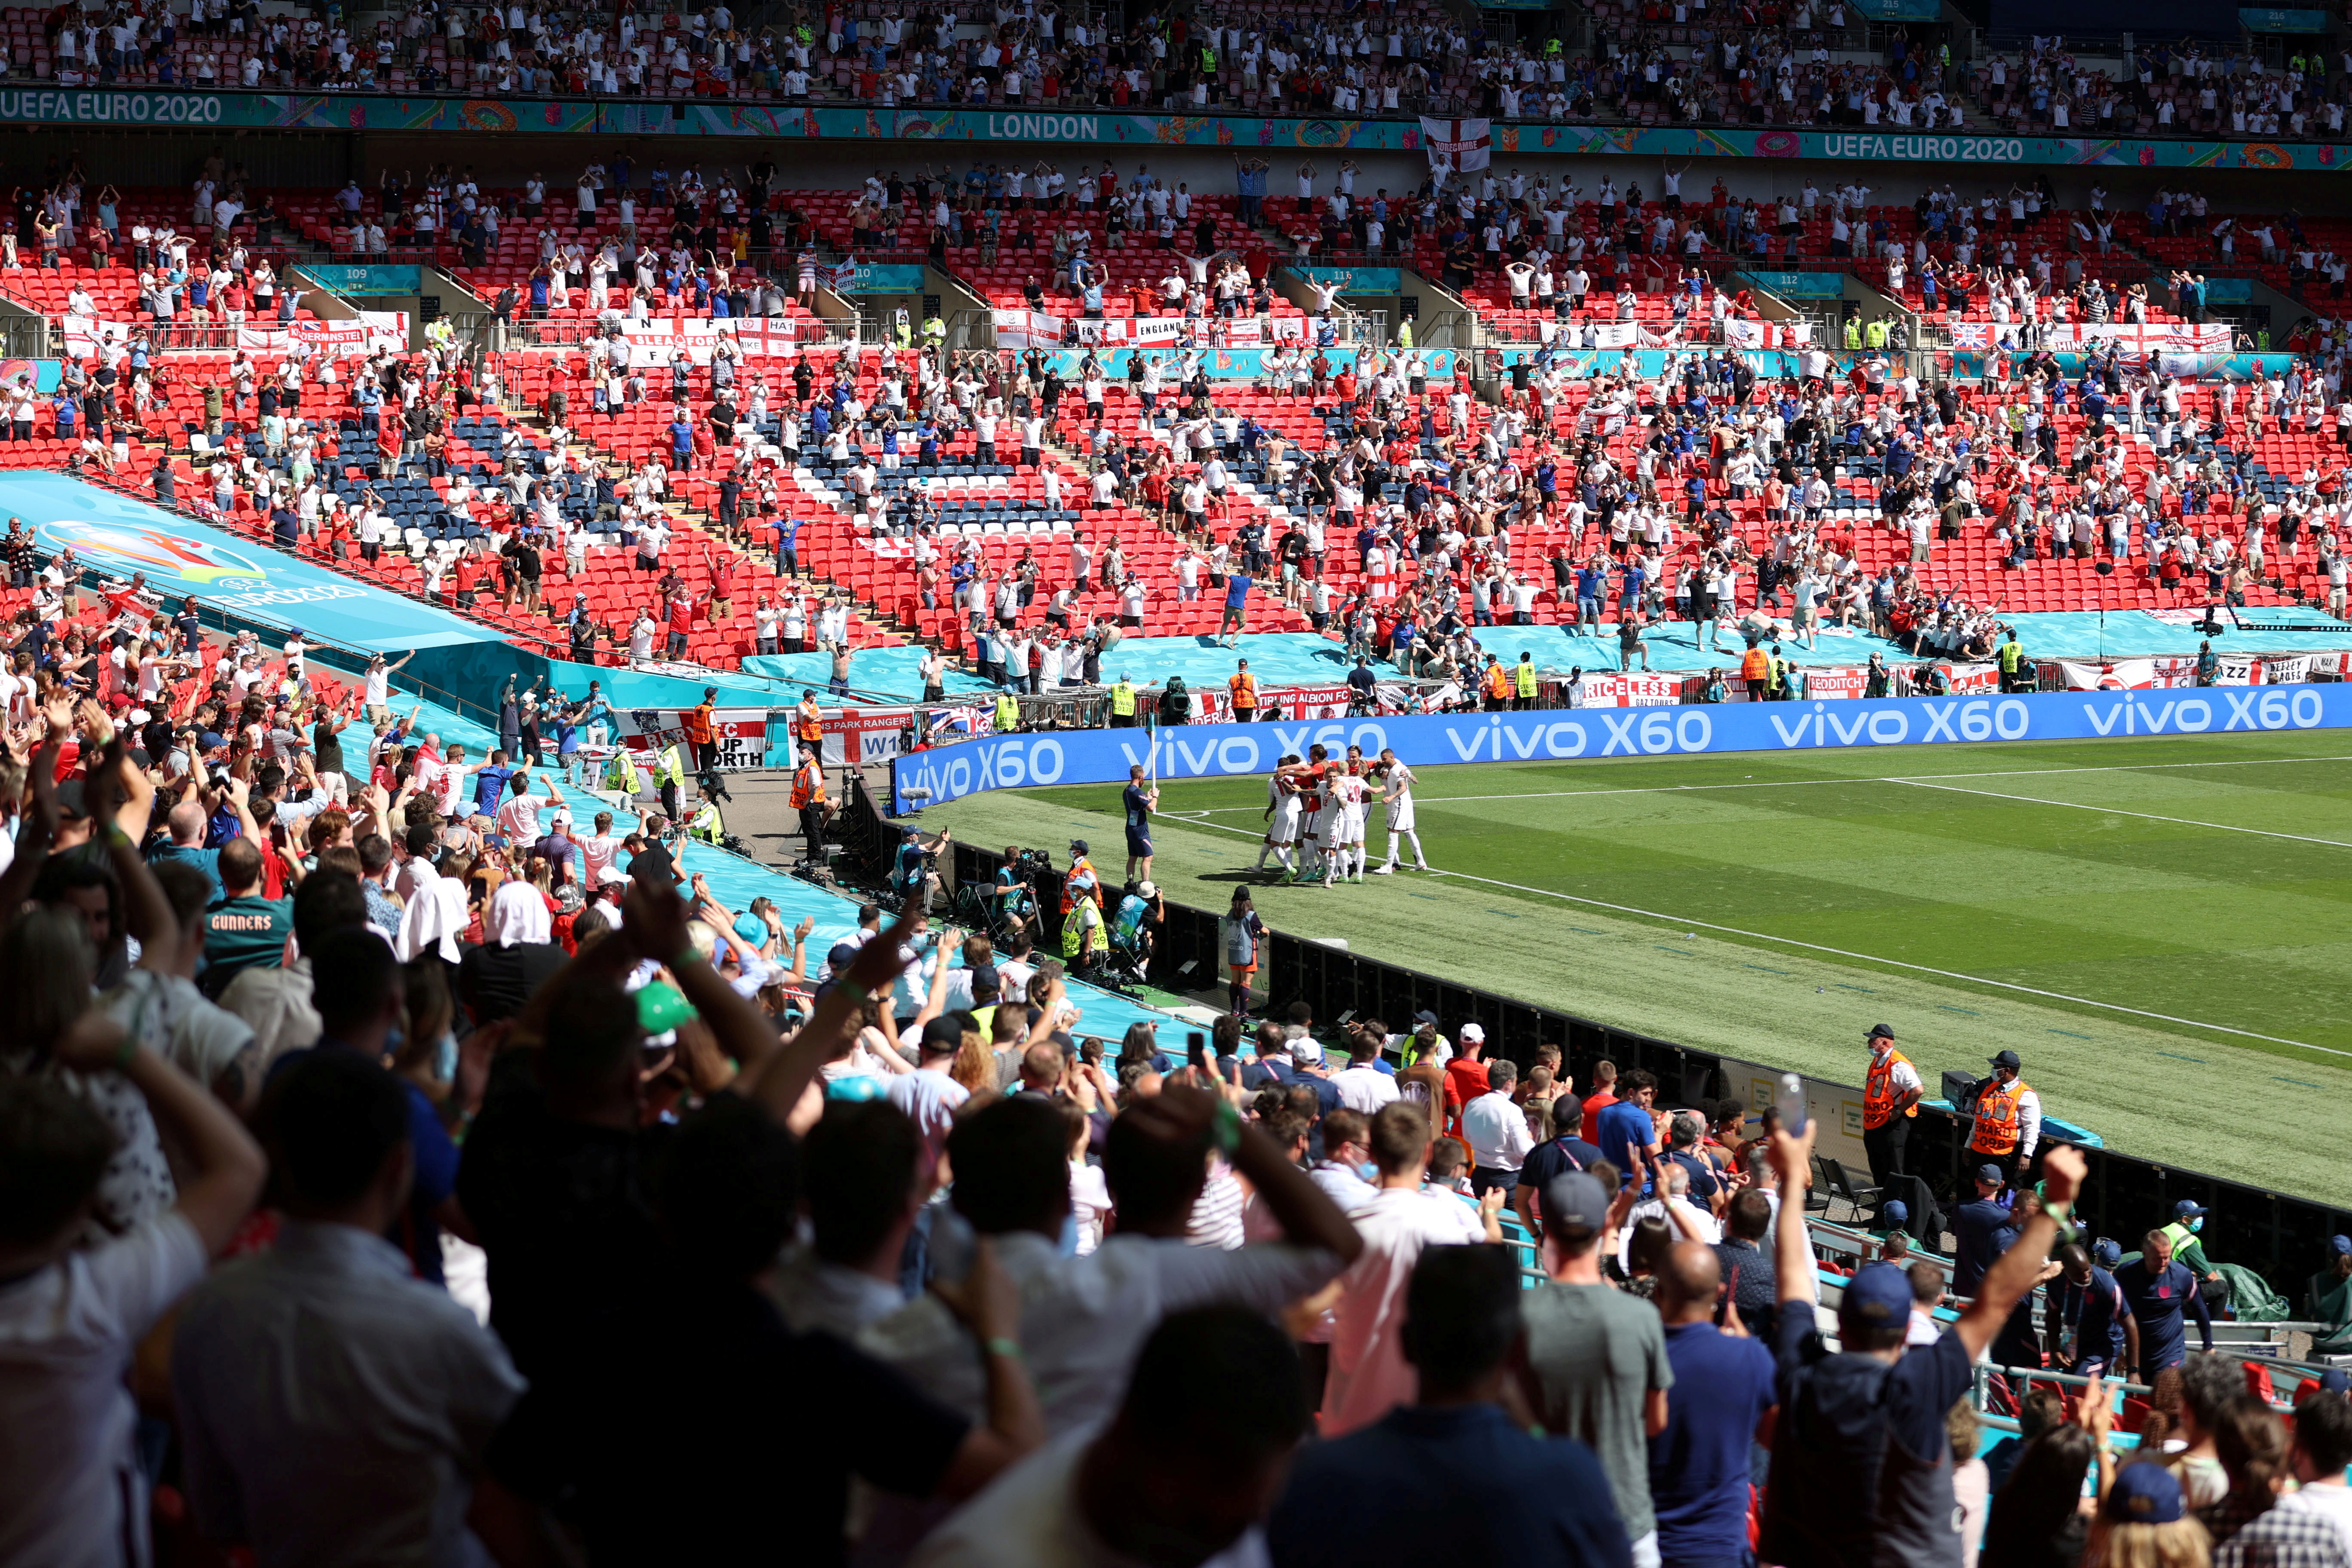 Soccer Football - Euro 2020 - Group D - England v Croatia - Wembley Stadium, London, Britain - June 13, 2021 General view as England's Raheem Sterling celebrates scoring their first goal with team mates and fans Pool via REUTERS/Catherine Ivill/File Photo